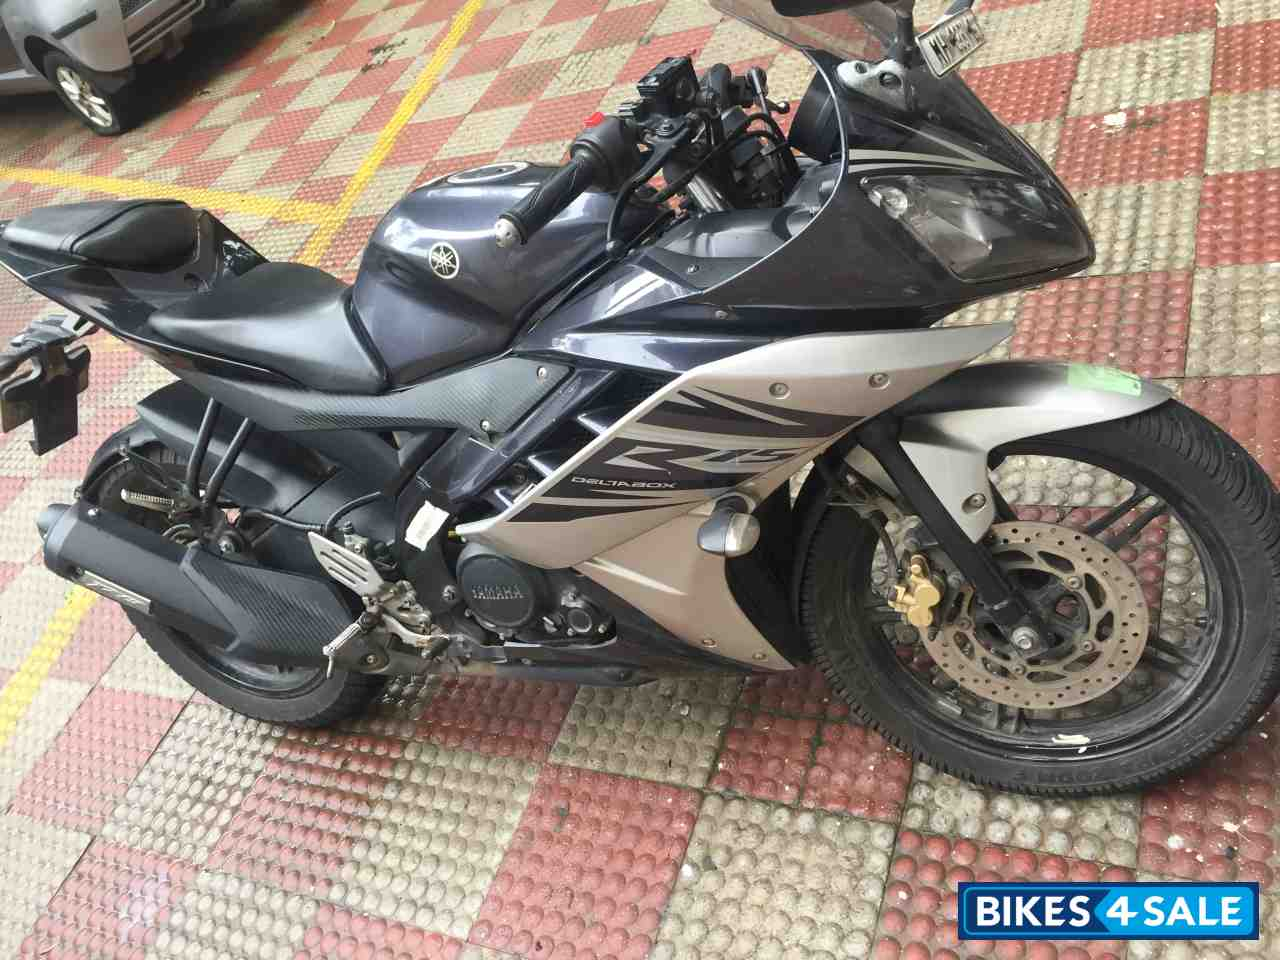 Yamaha R Used For Sale In Mumbai